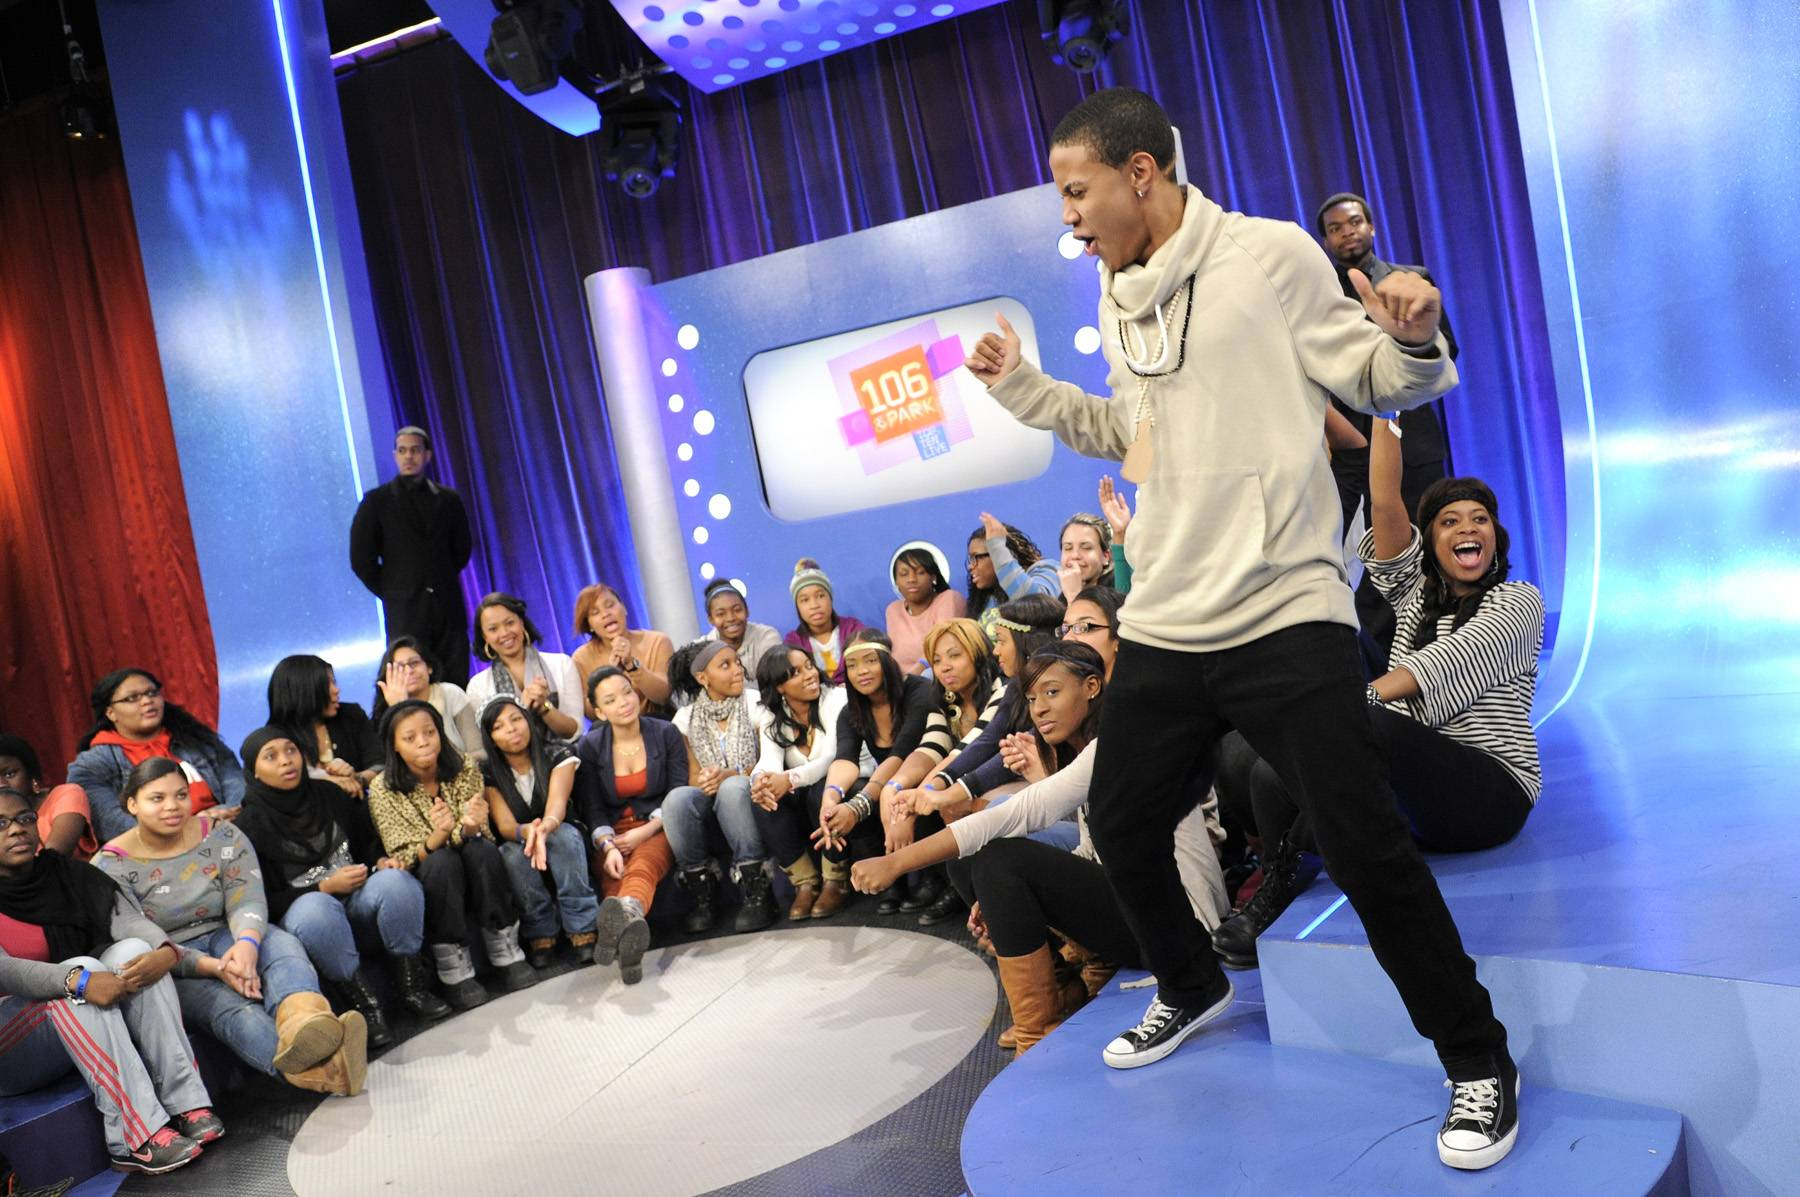 Get It On\r - The Livest Audience is excited whenever Bow Wow, aka Mr. 106 & Park, appears at 106 & Park, January 23, 2012. (Photo: John Ricard / BET)